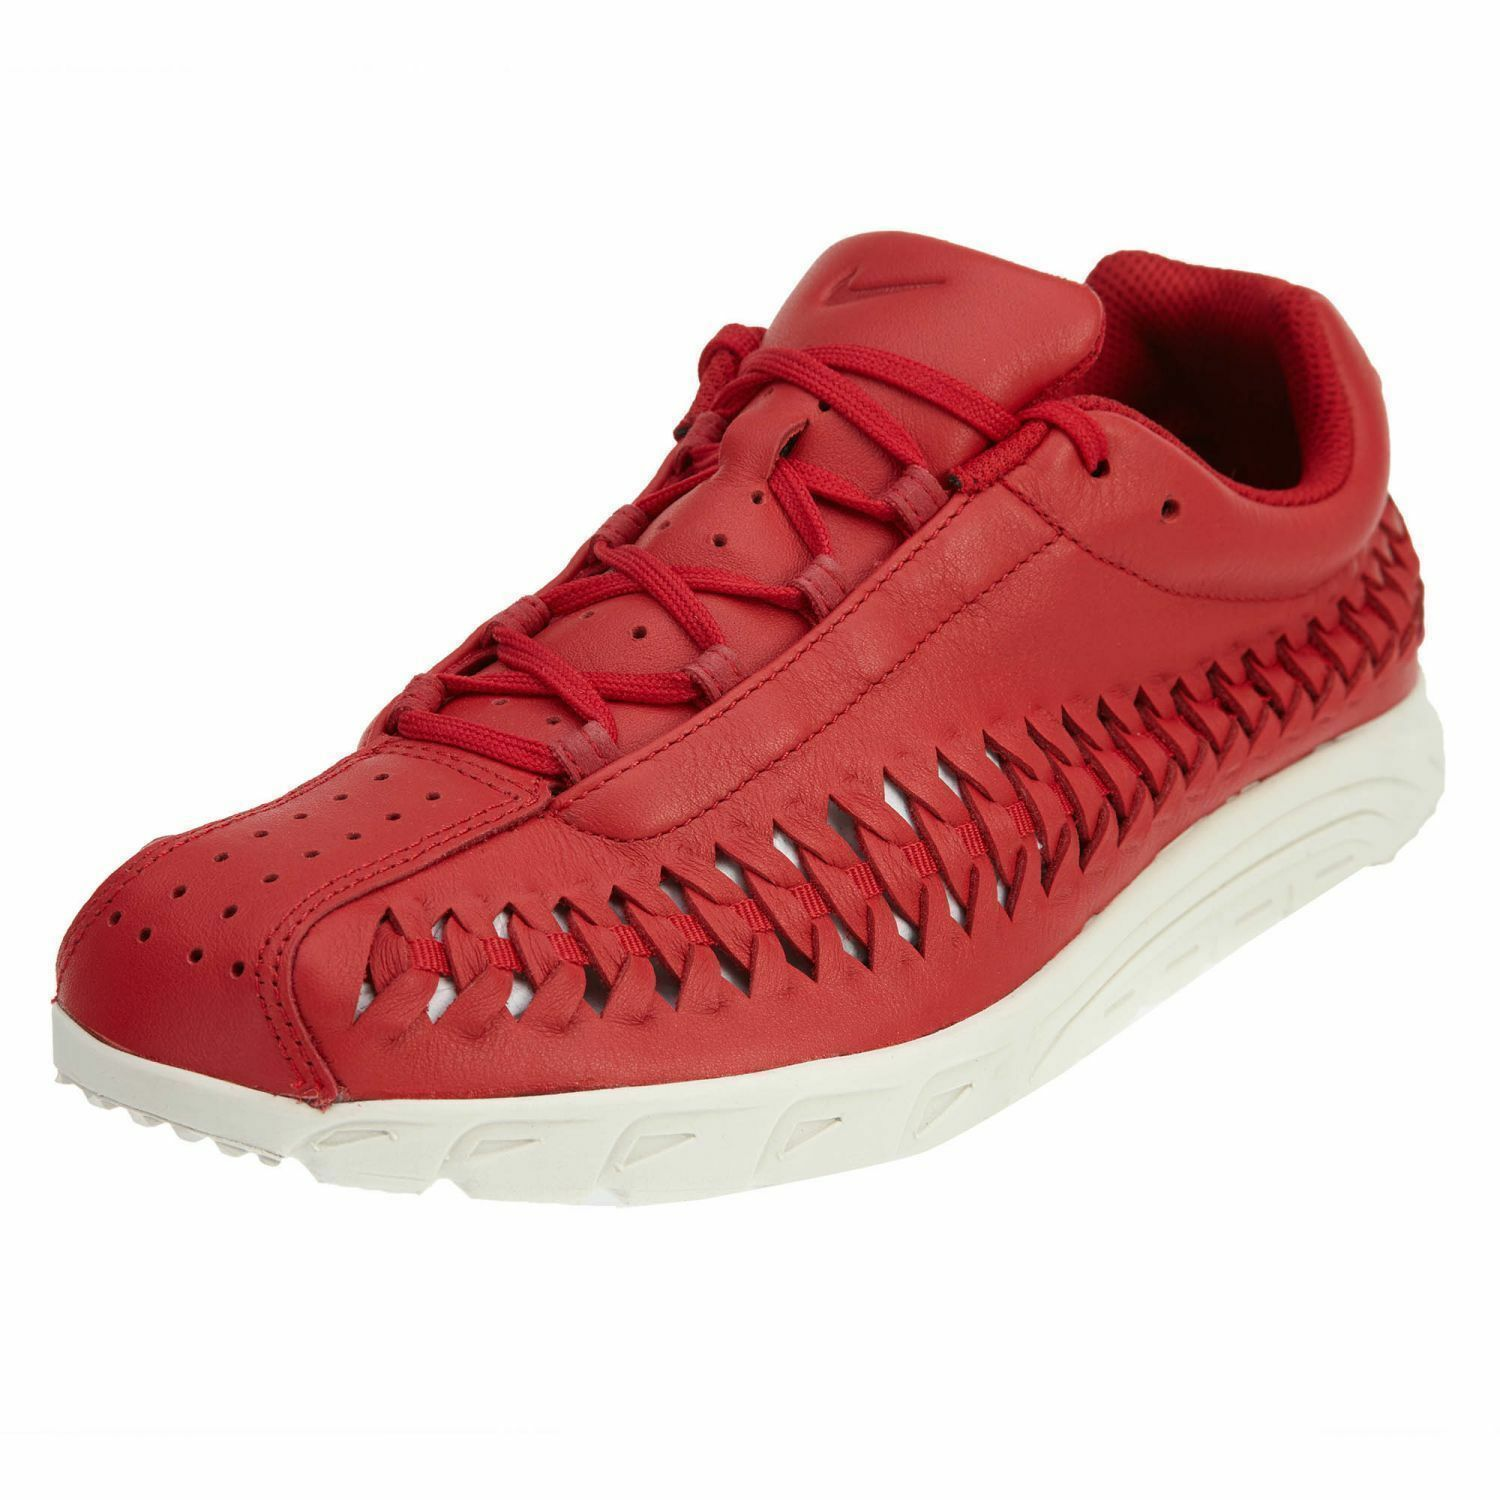 Nike Mayfly Woven Mens Independence Day Pack 833132-601 Red shoes 45% Off MSRP